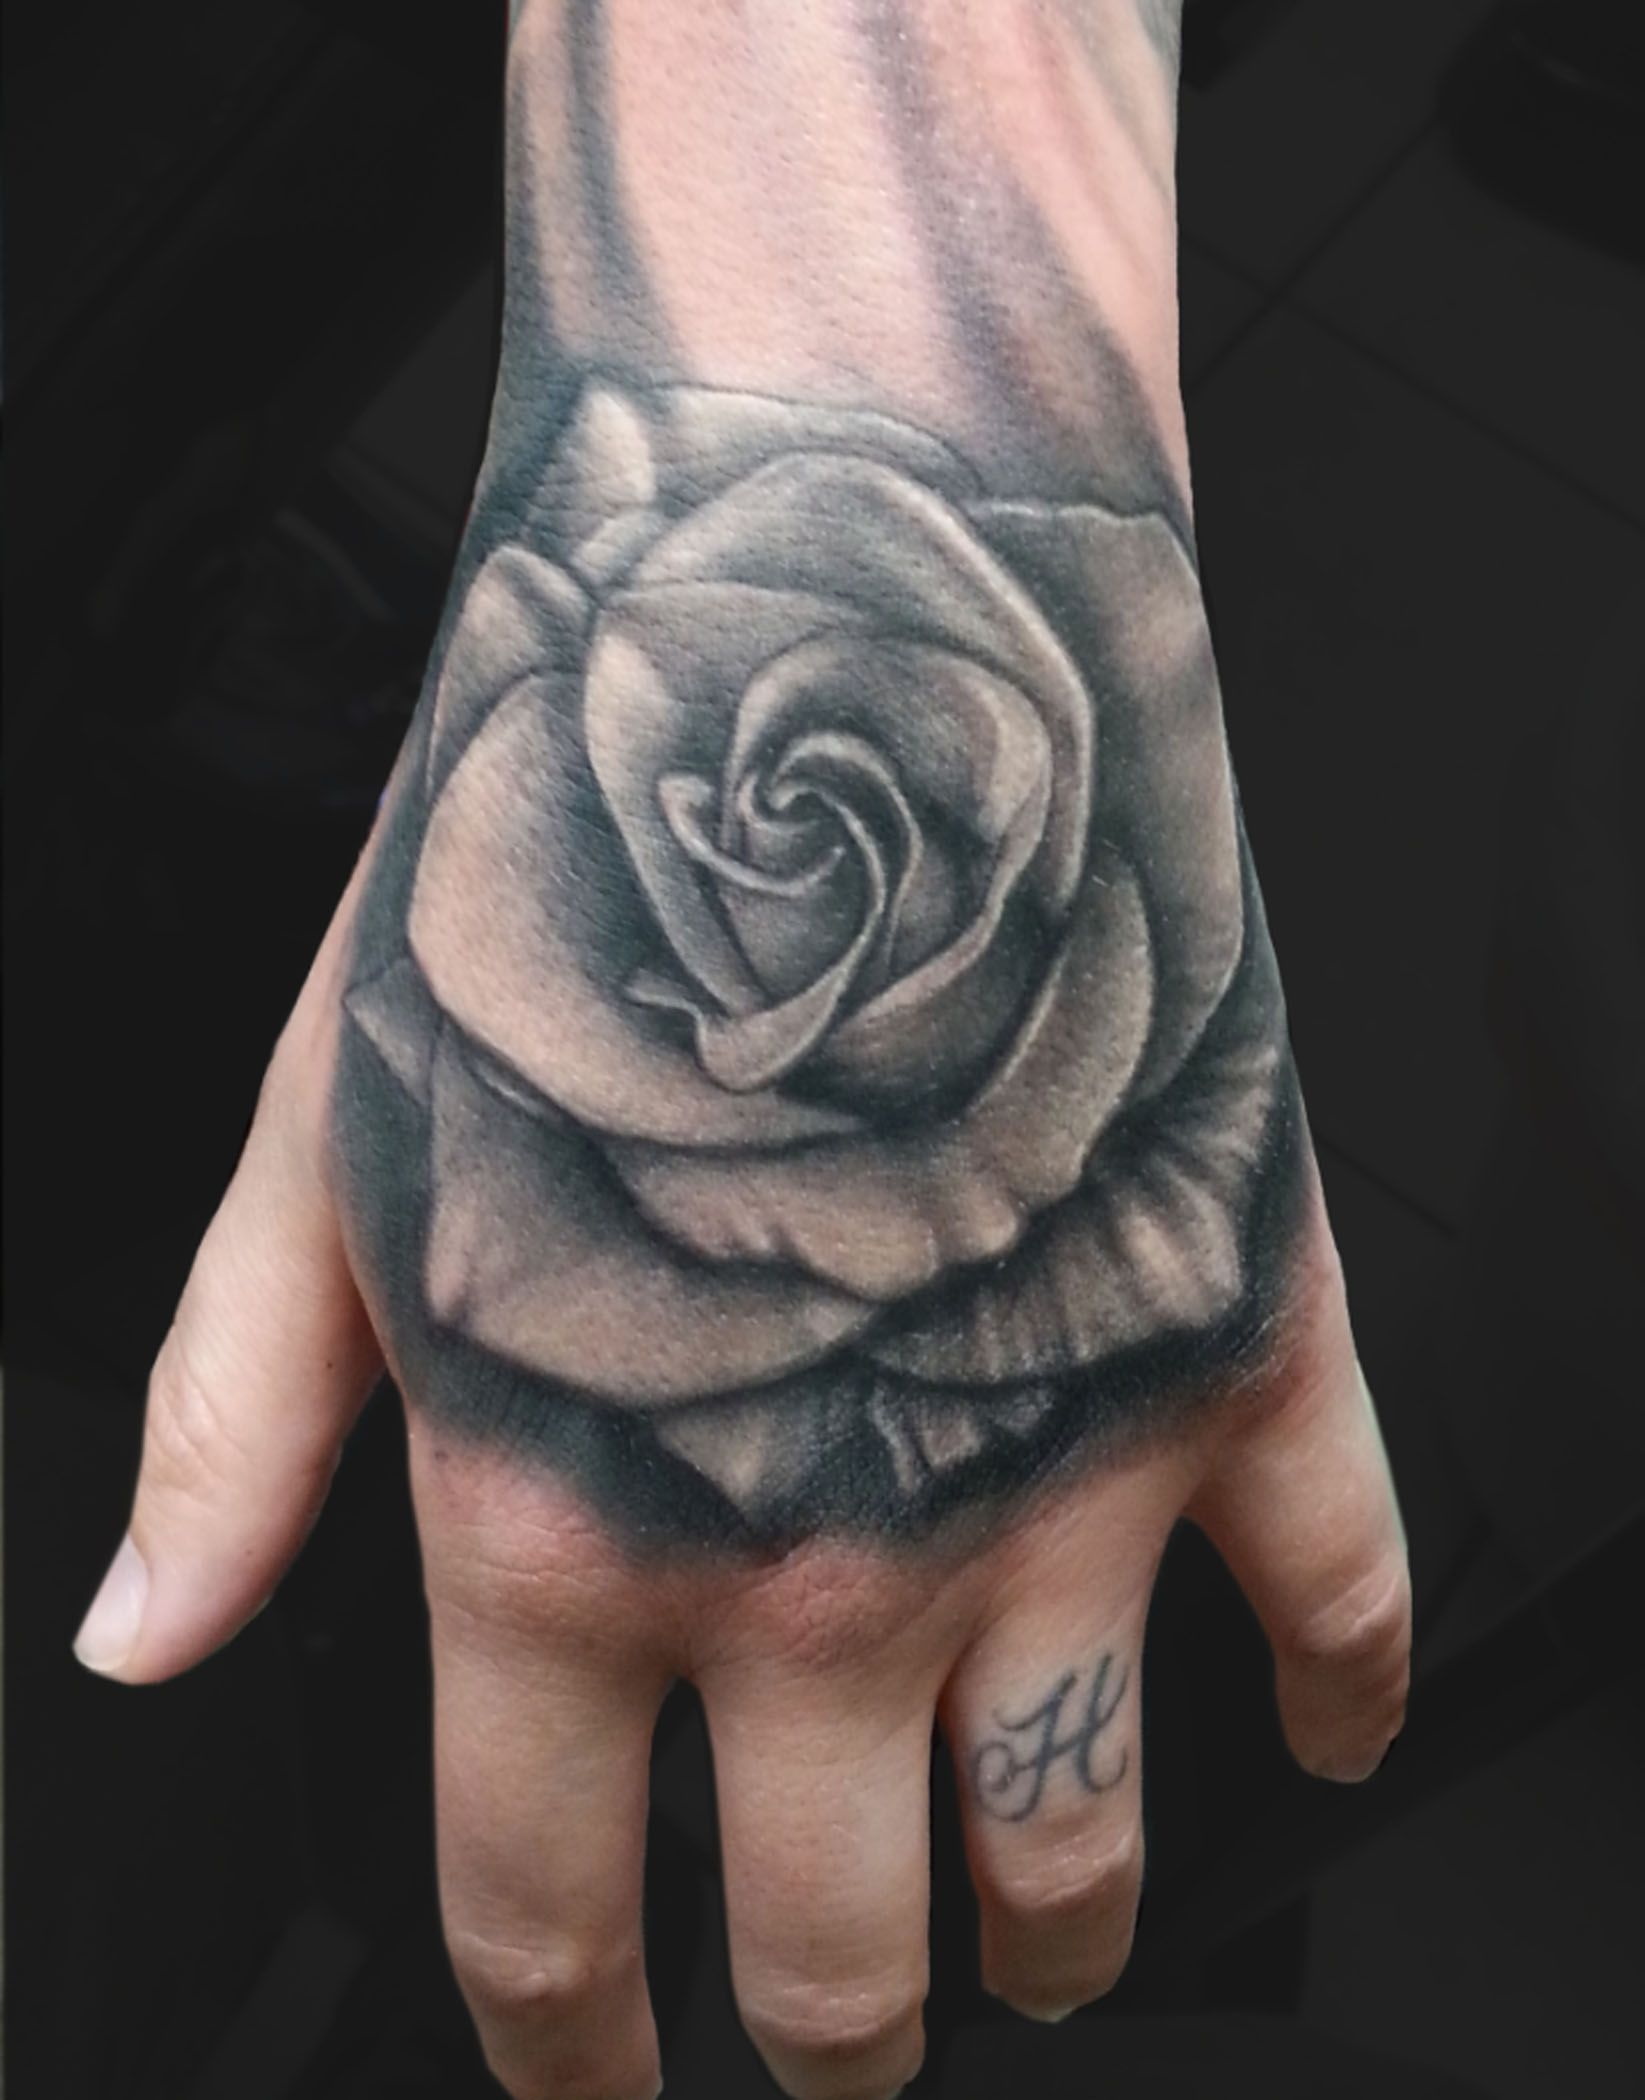 Black and grey rose hand tattoo by jesse vardaro at fable